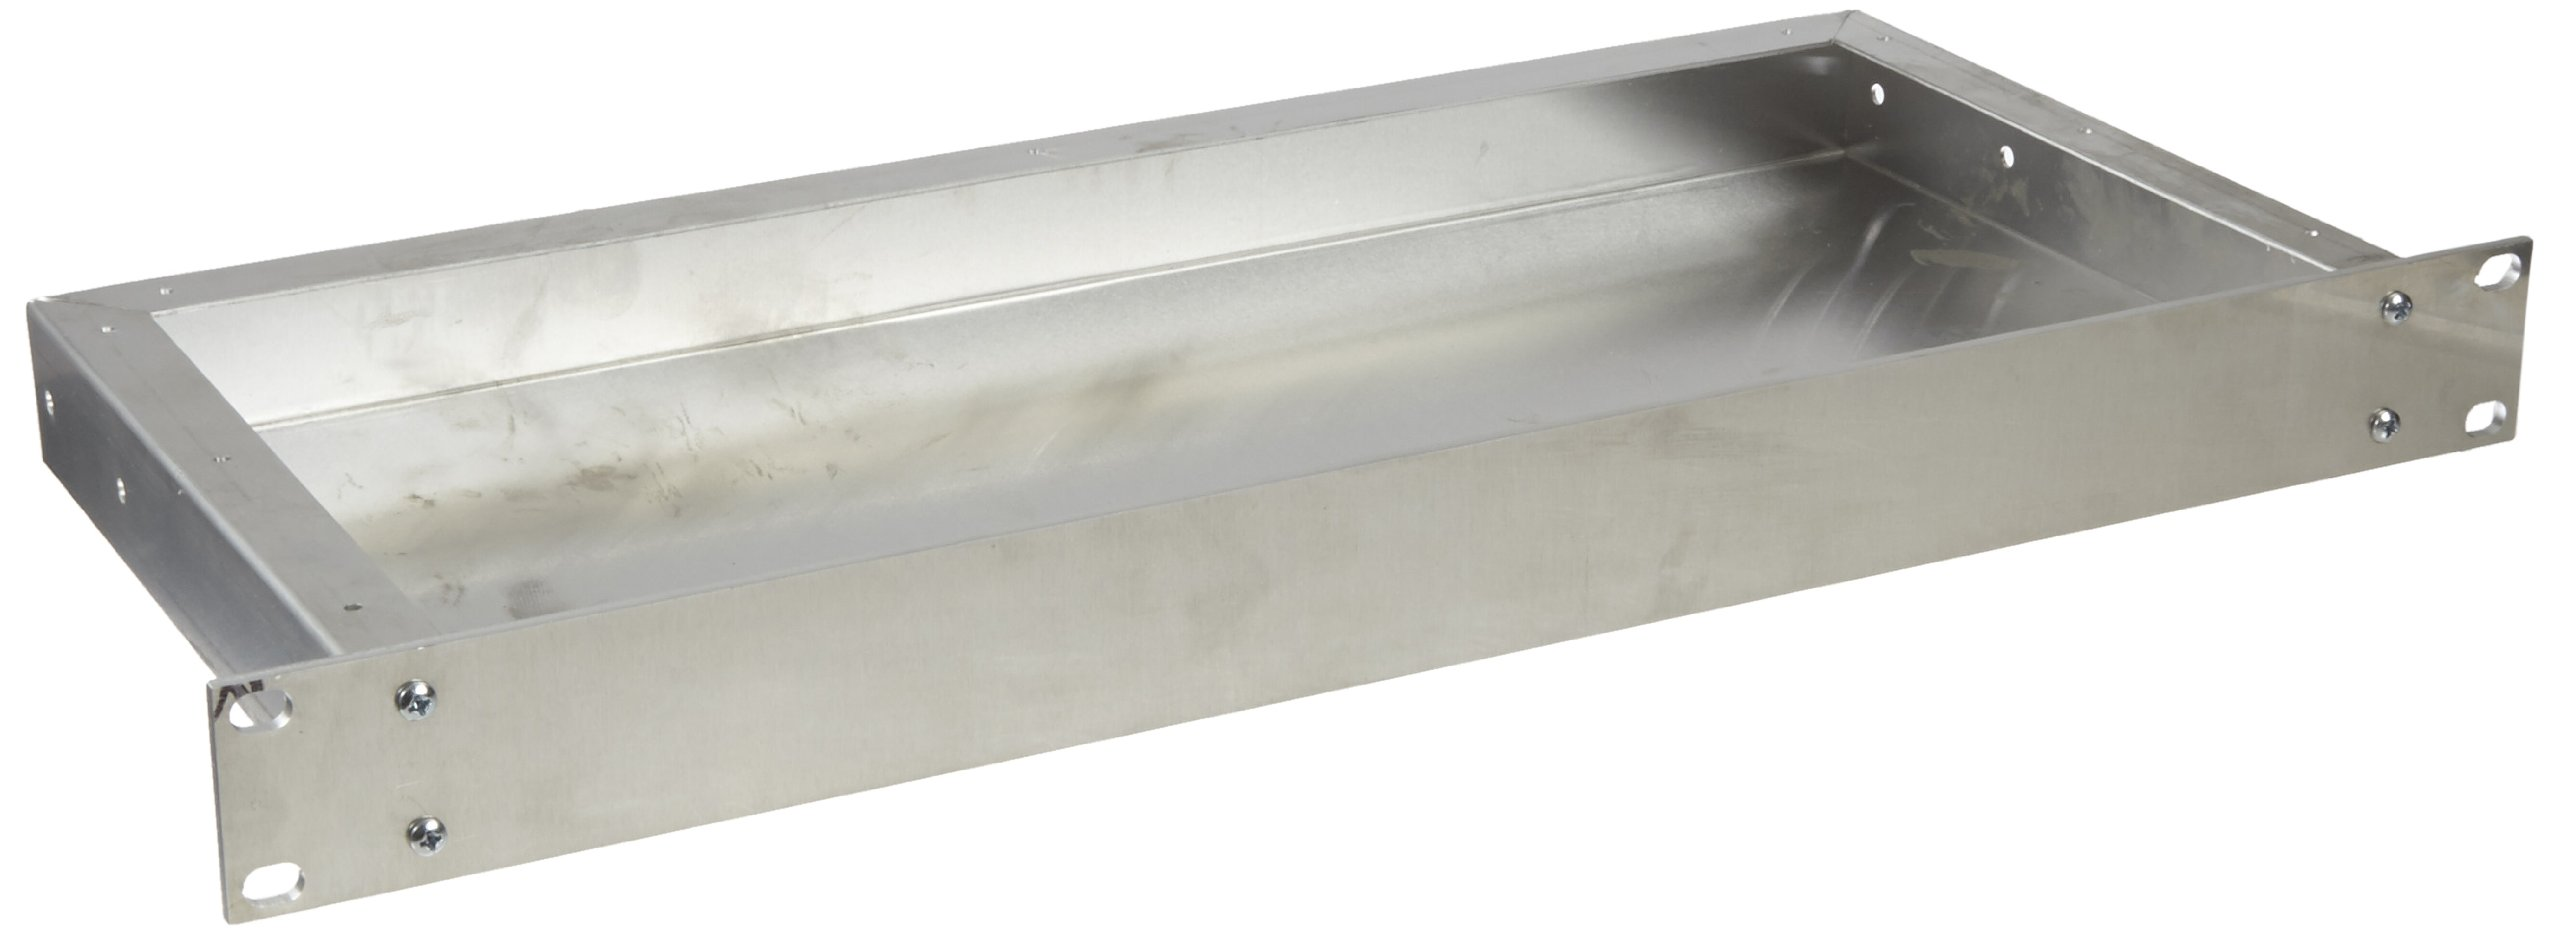 BUD Industries CH-14401 Aluminum Small Rack Mount Chassis, 17'' Width x 1-3/4'' Height x 8'' Depth, Natural Finish